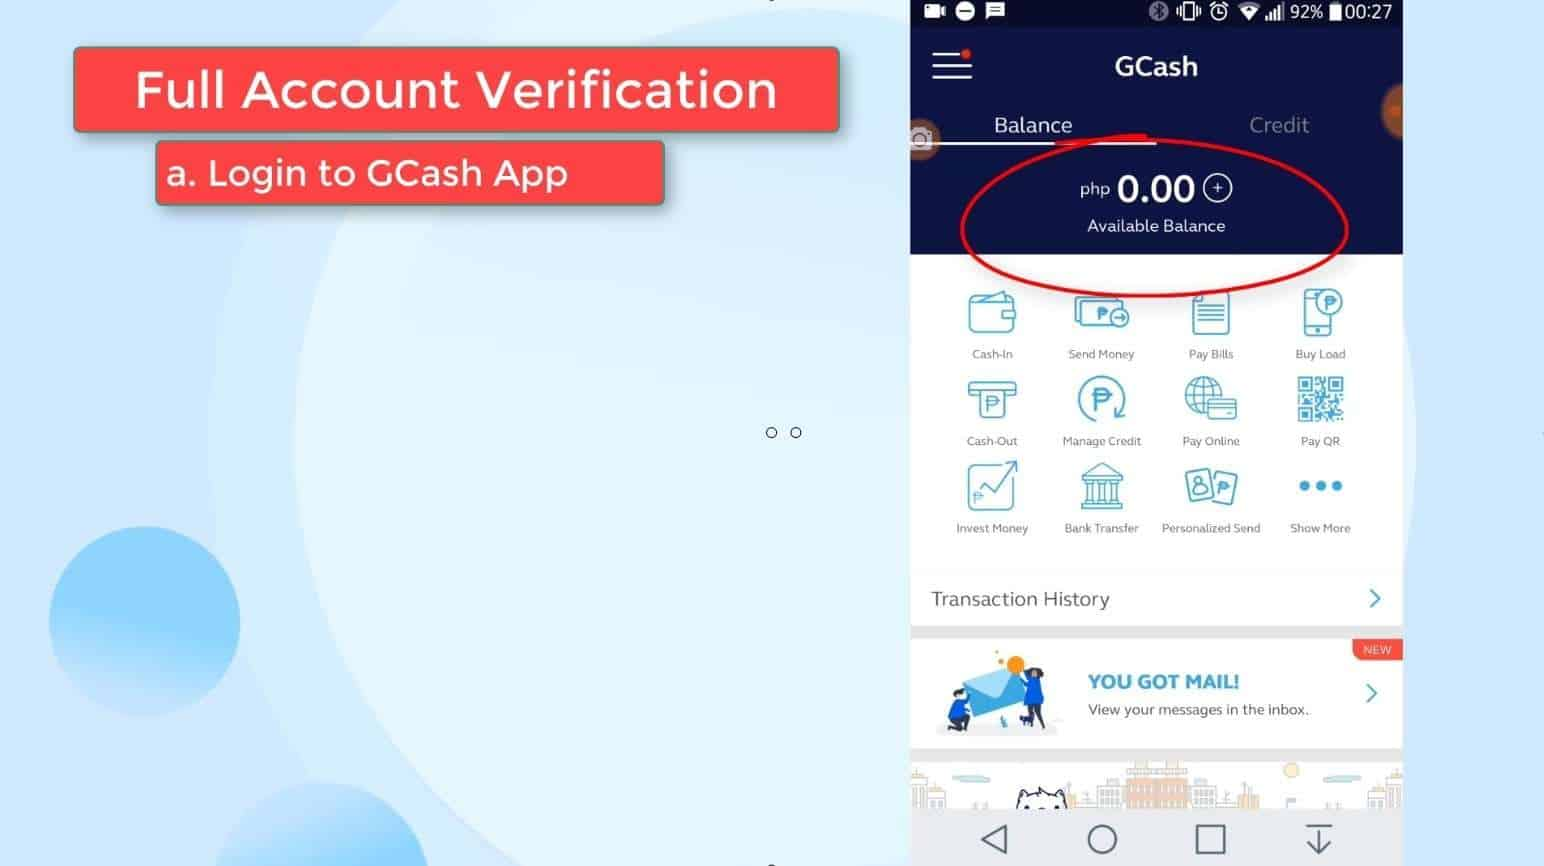 GCash KYC Full Verification: How to GCash Verify Account Online